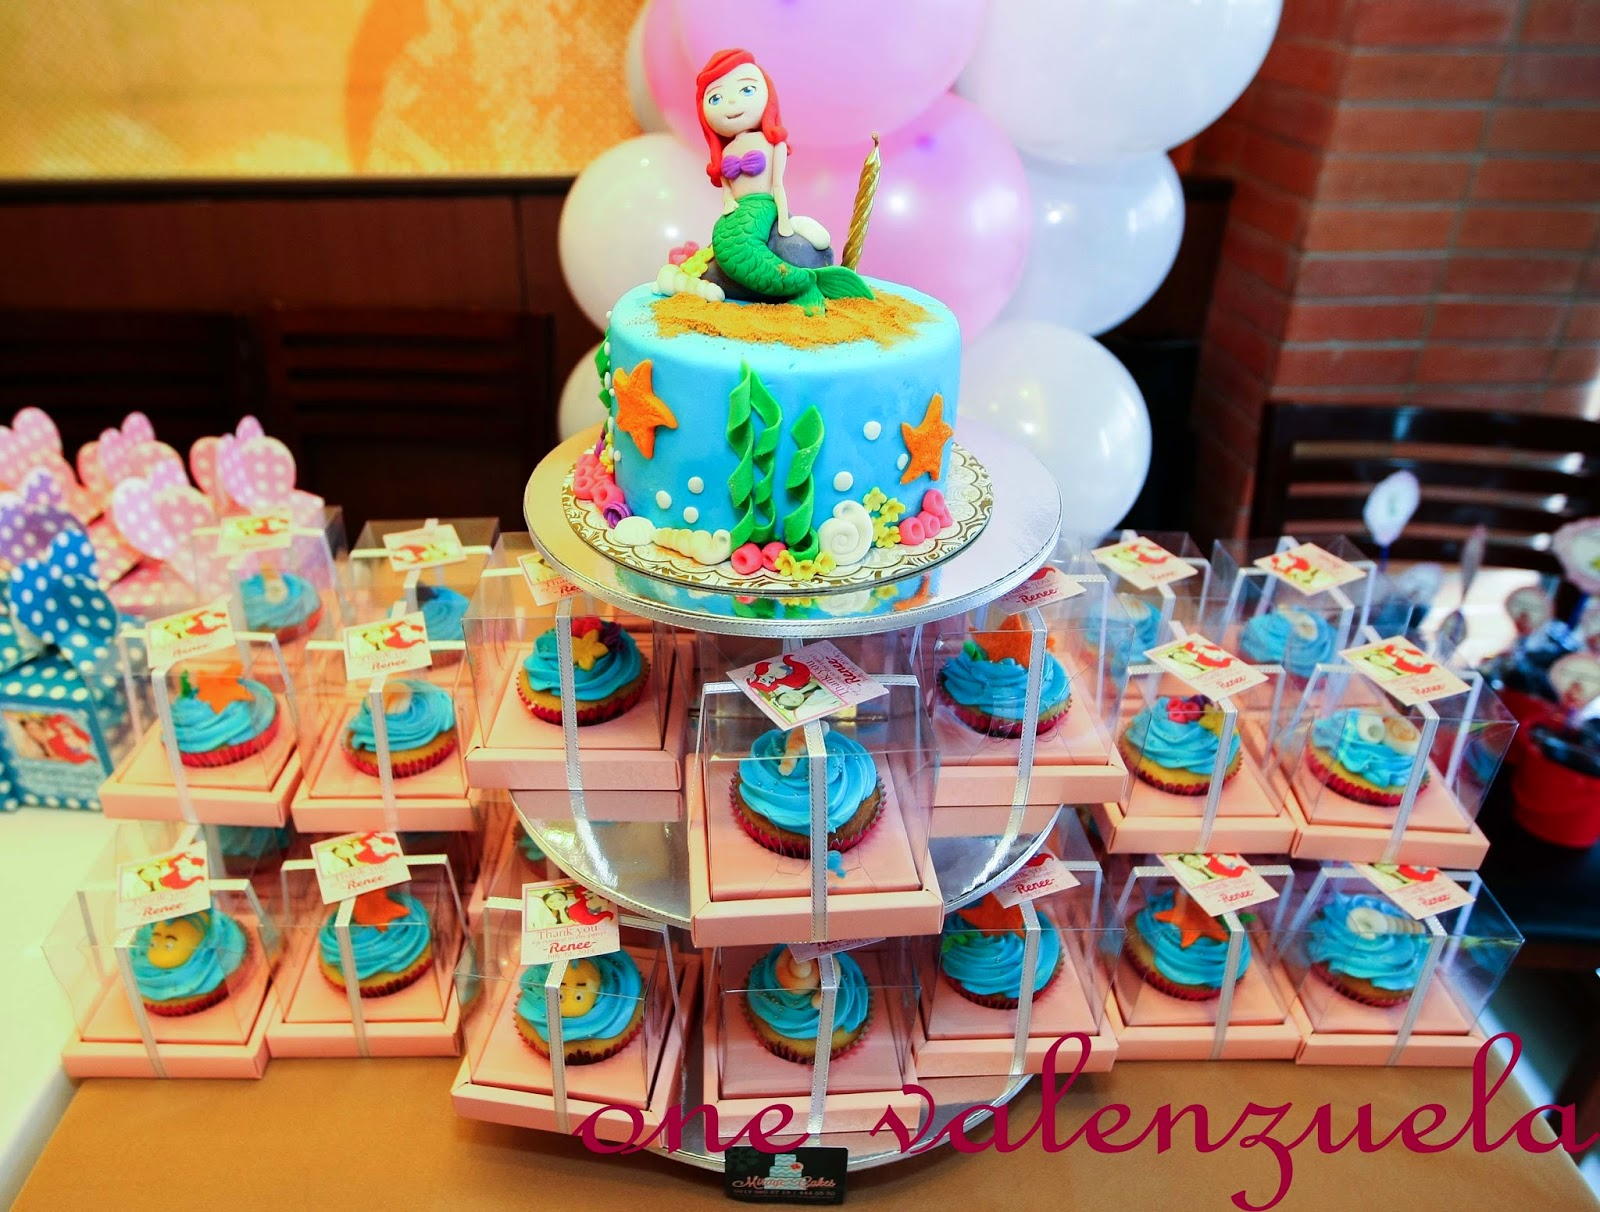 On Little One Valenzuelas Birthday Cake Cookies and Sweets Part